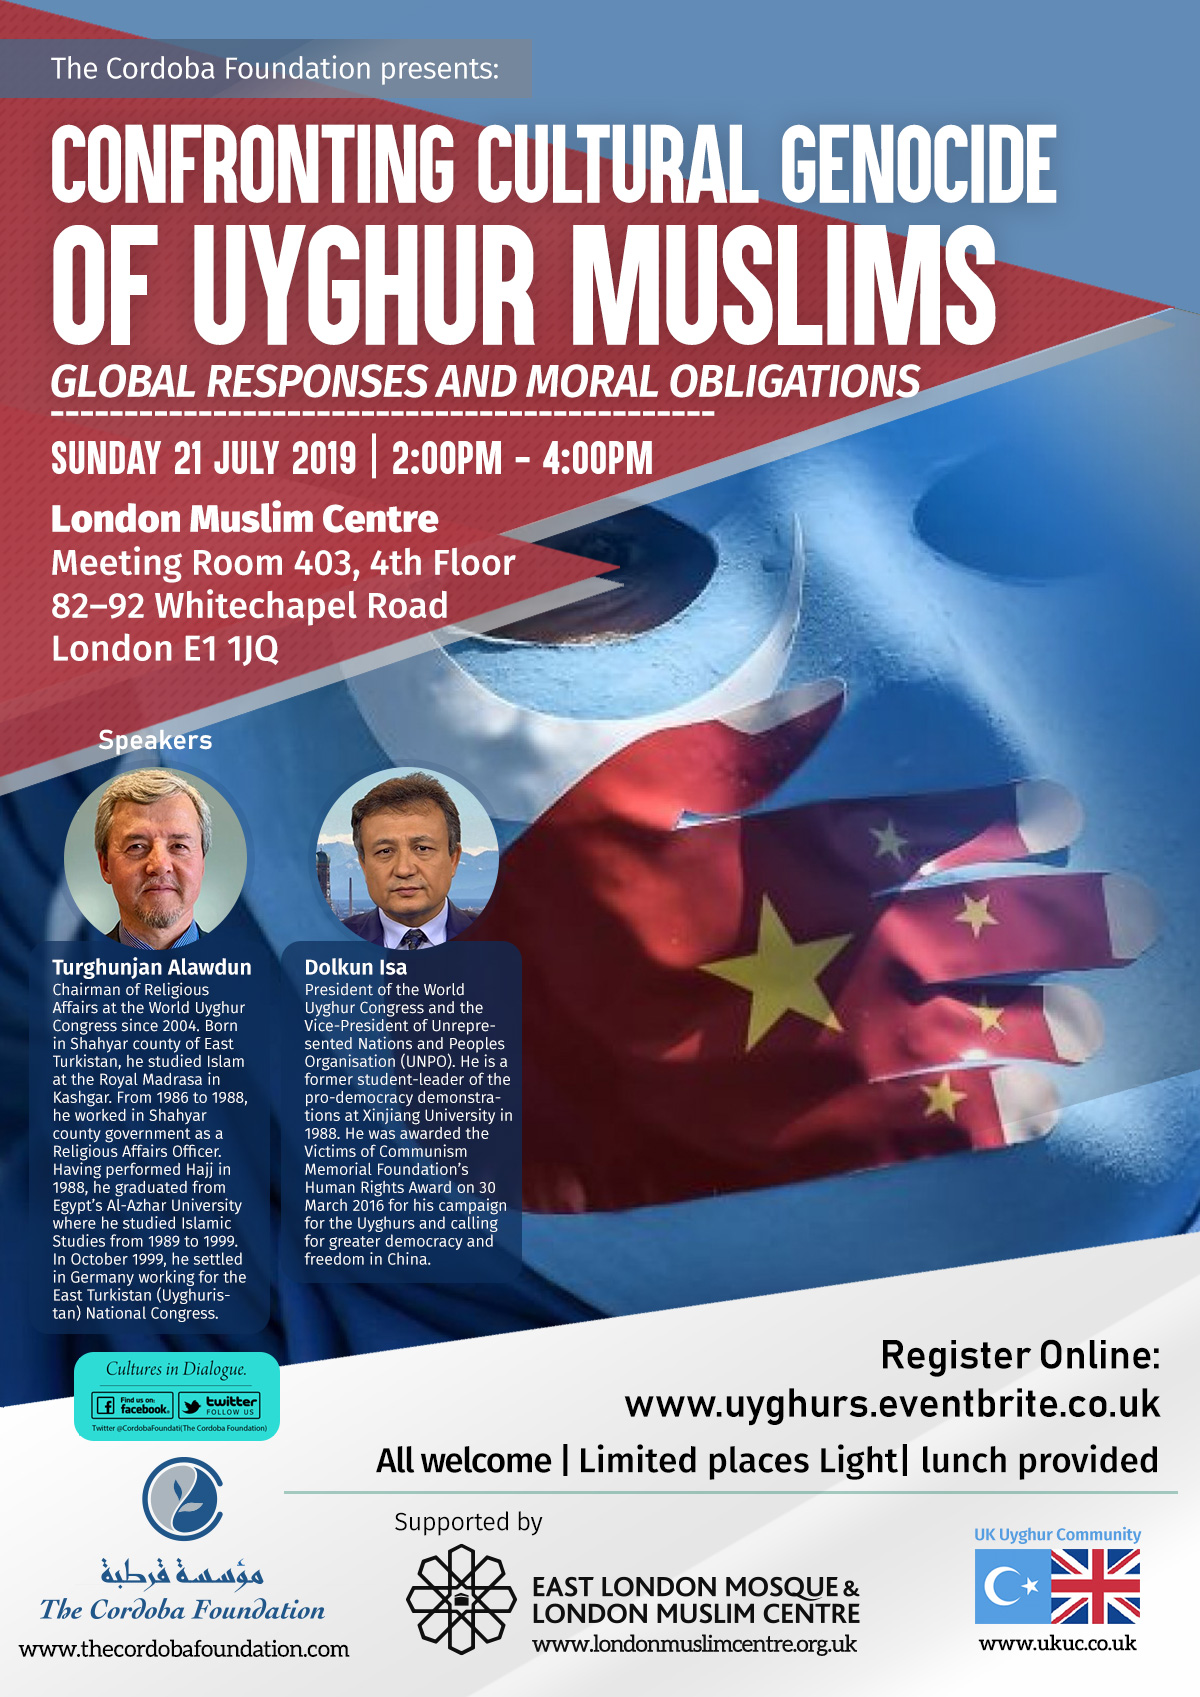 Confronting Cultural Genocide of Uyghur Muslims.